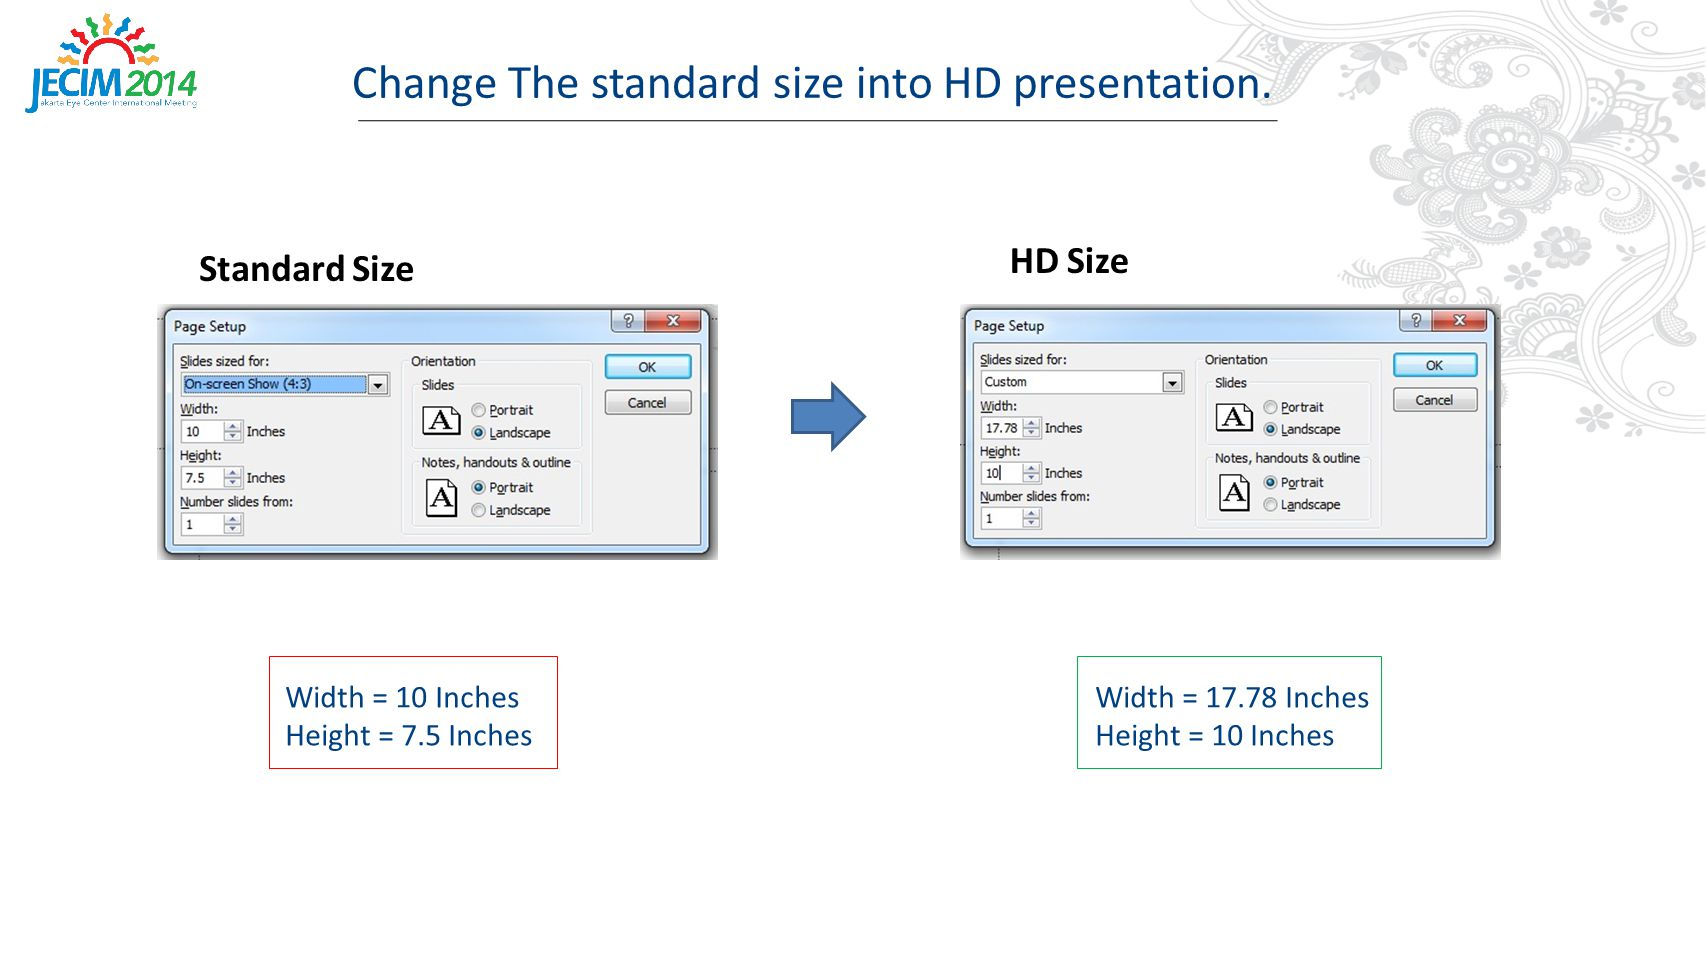 Change The standard size into HD presentation.